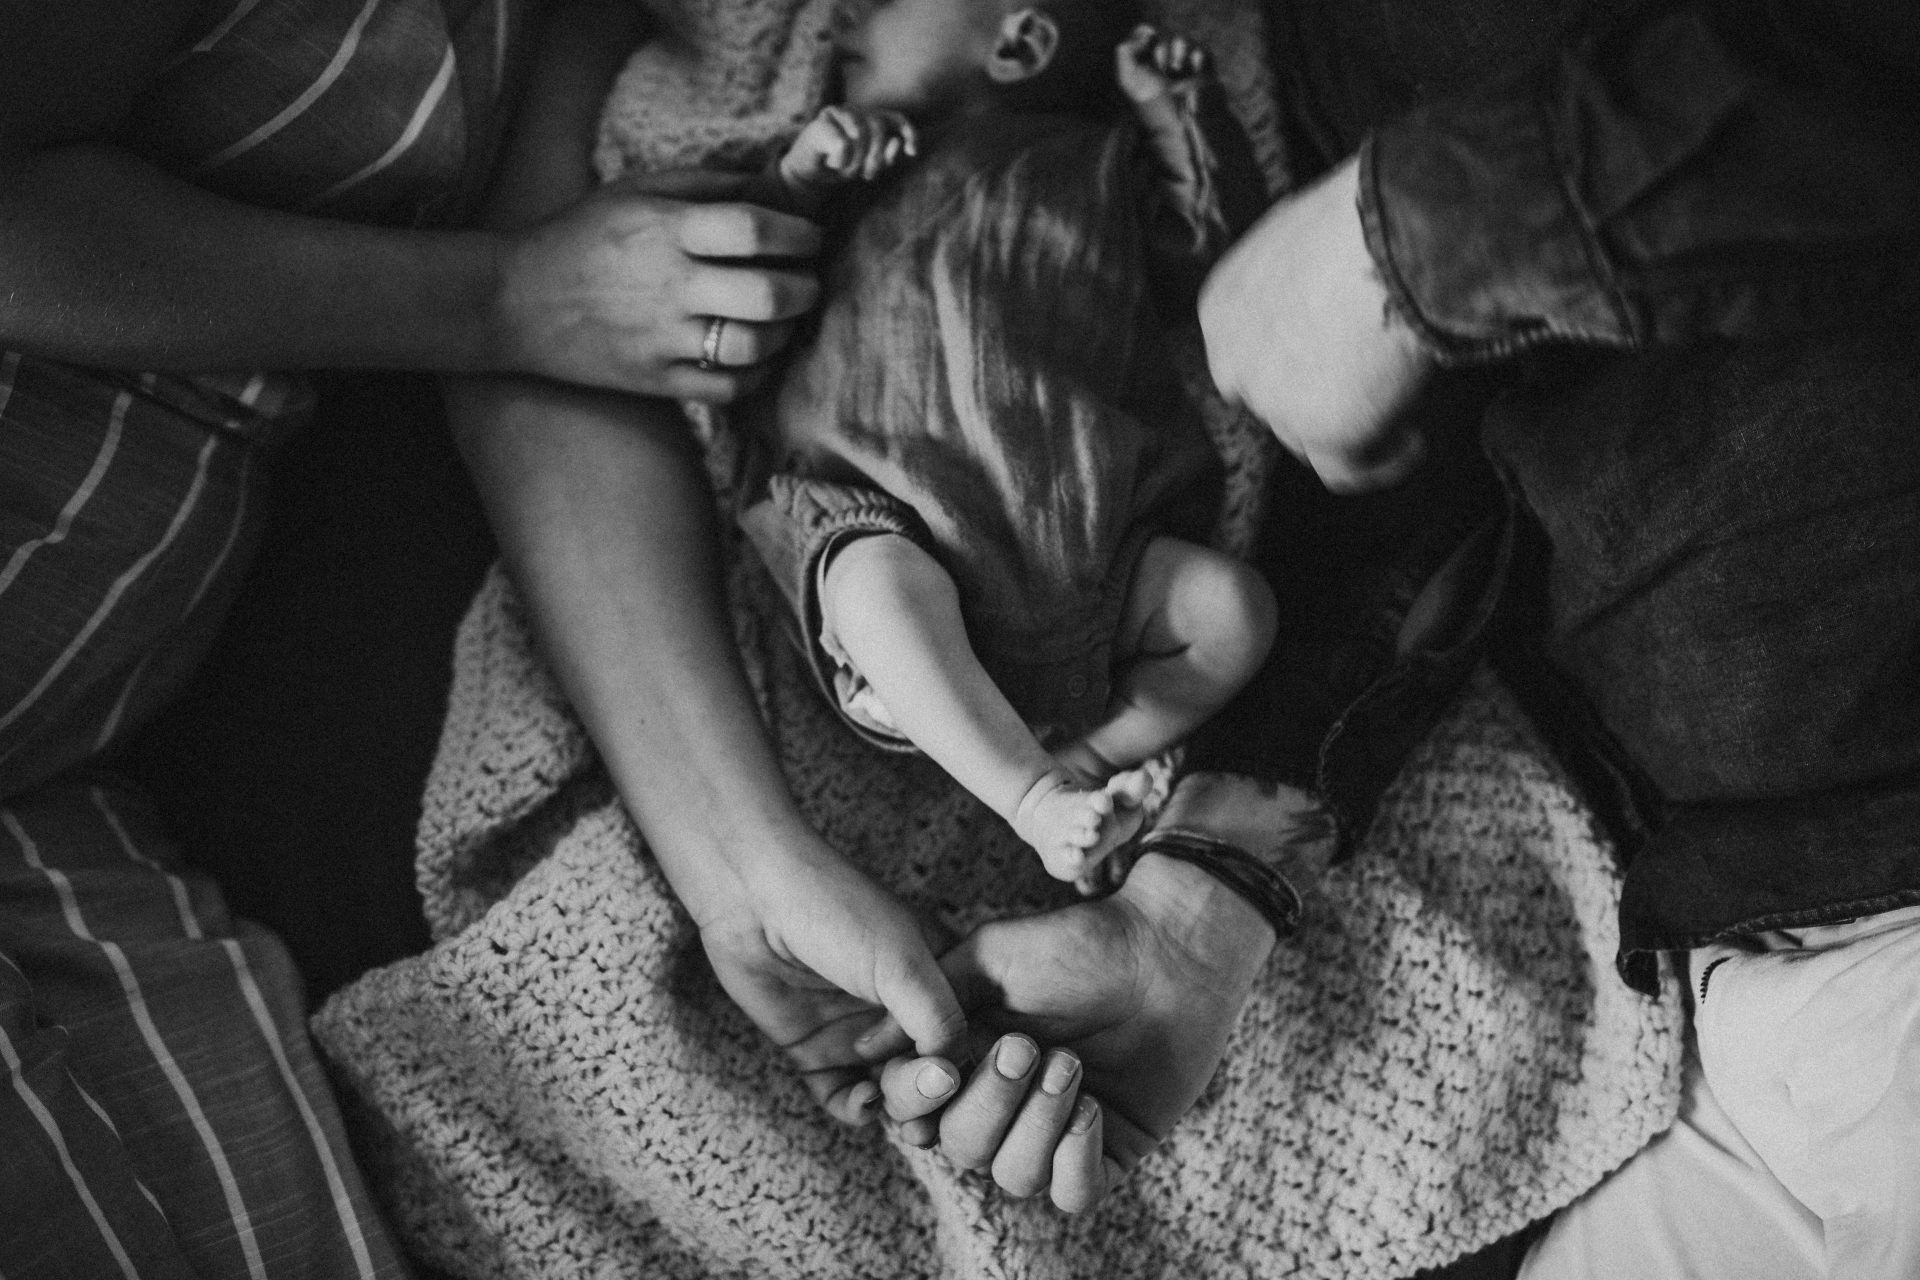 Black and white image of hand holding and hands touching baby in between parents